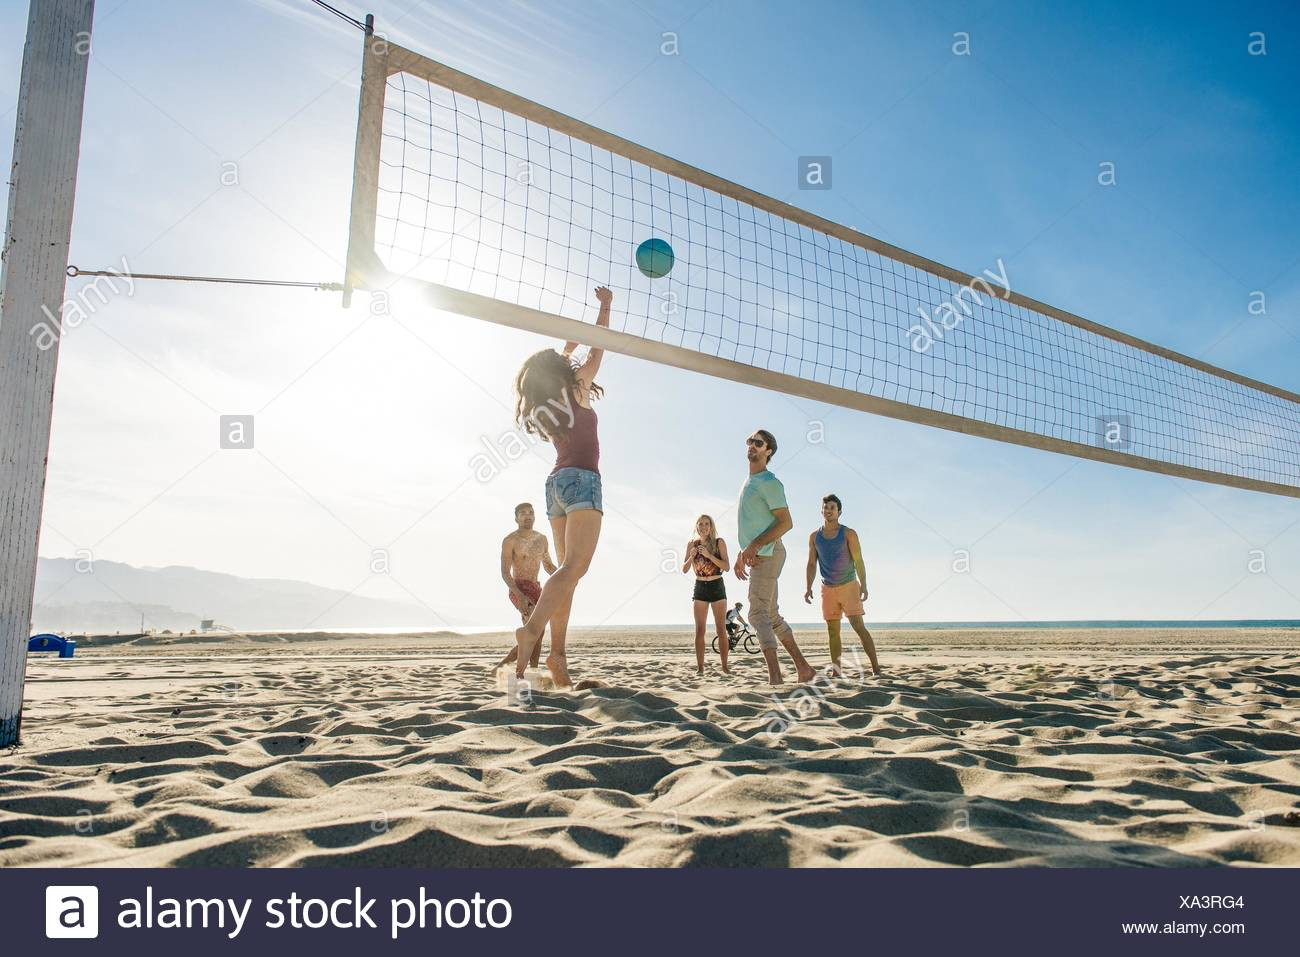 Group of friends playing volleyball on beach Stock Photo